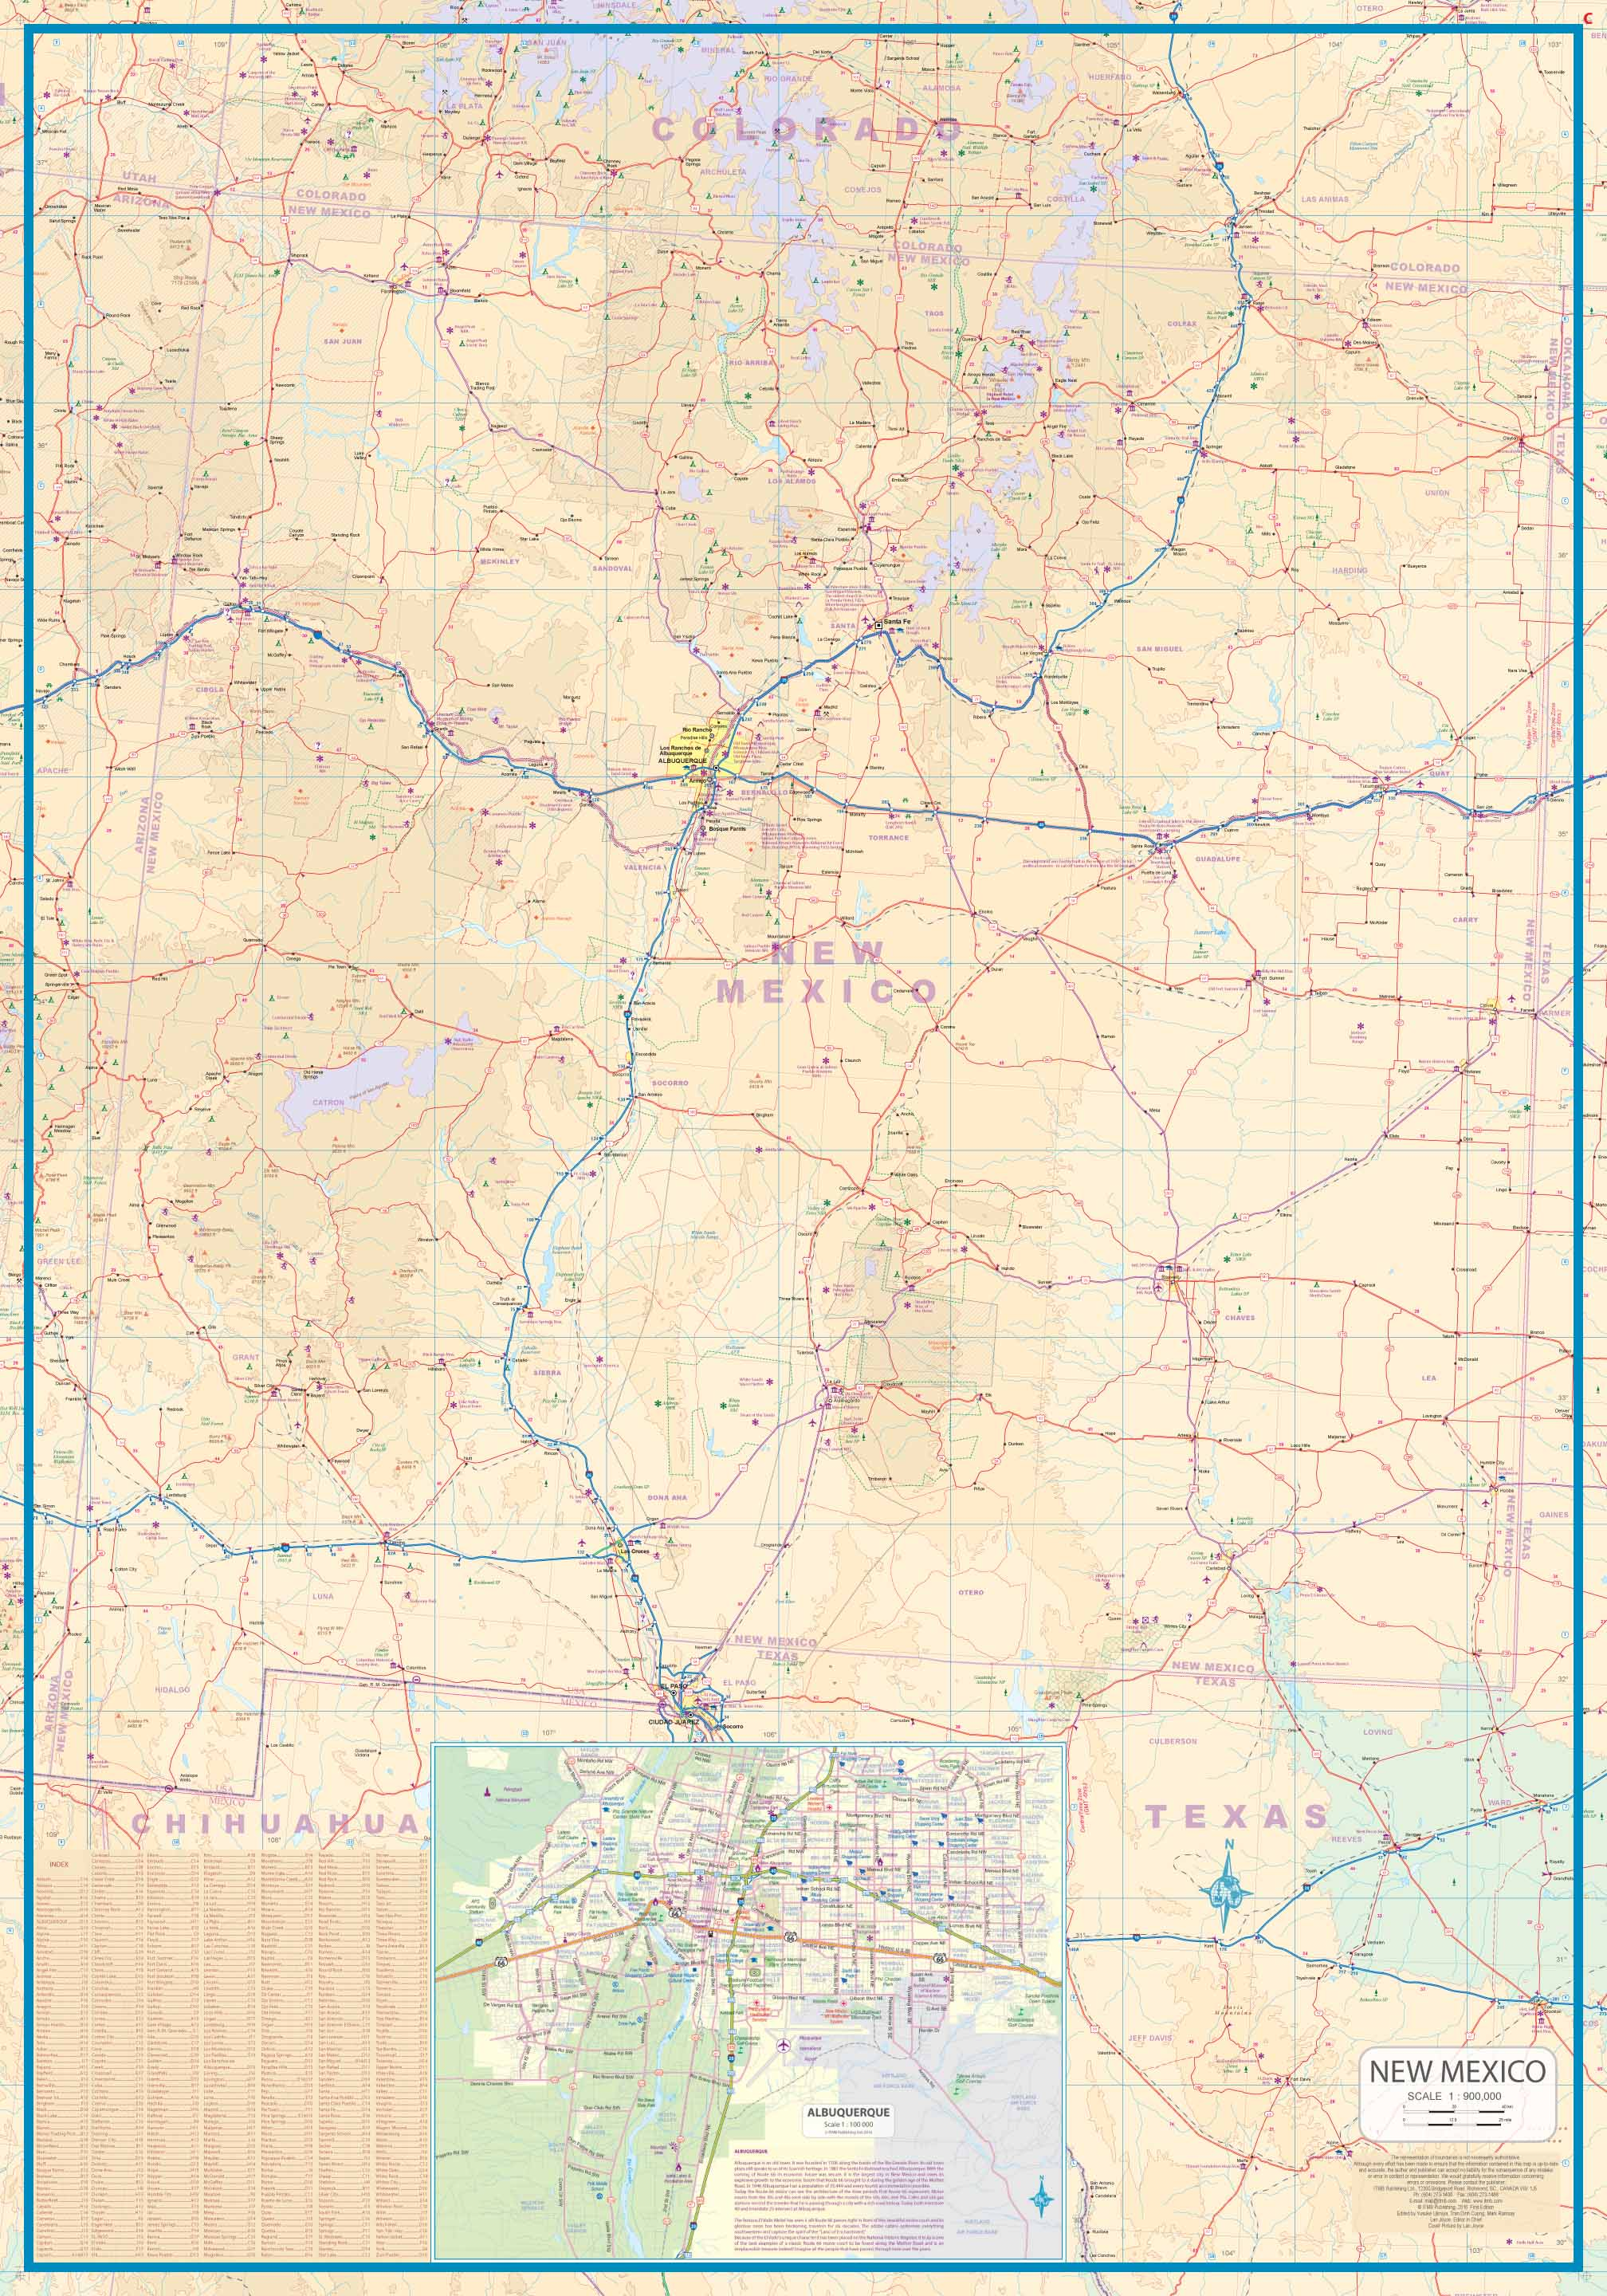 Maps for travel City Maps Road Maps Guides Globes Topographic – Travel Map Of Arizona